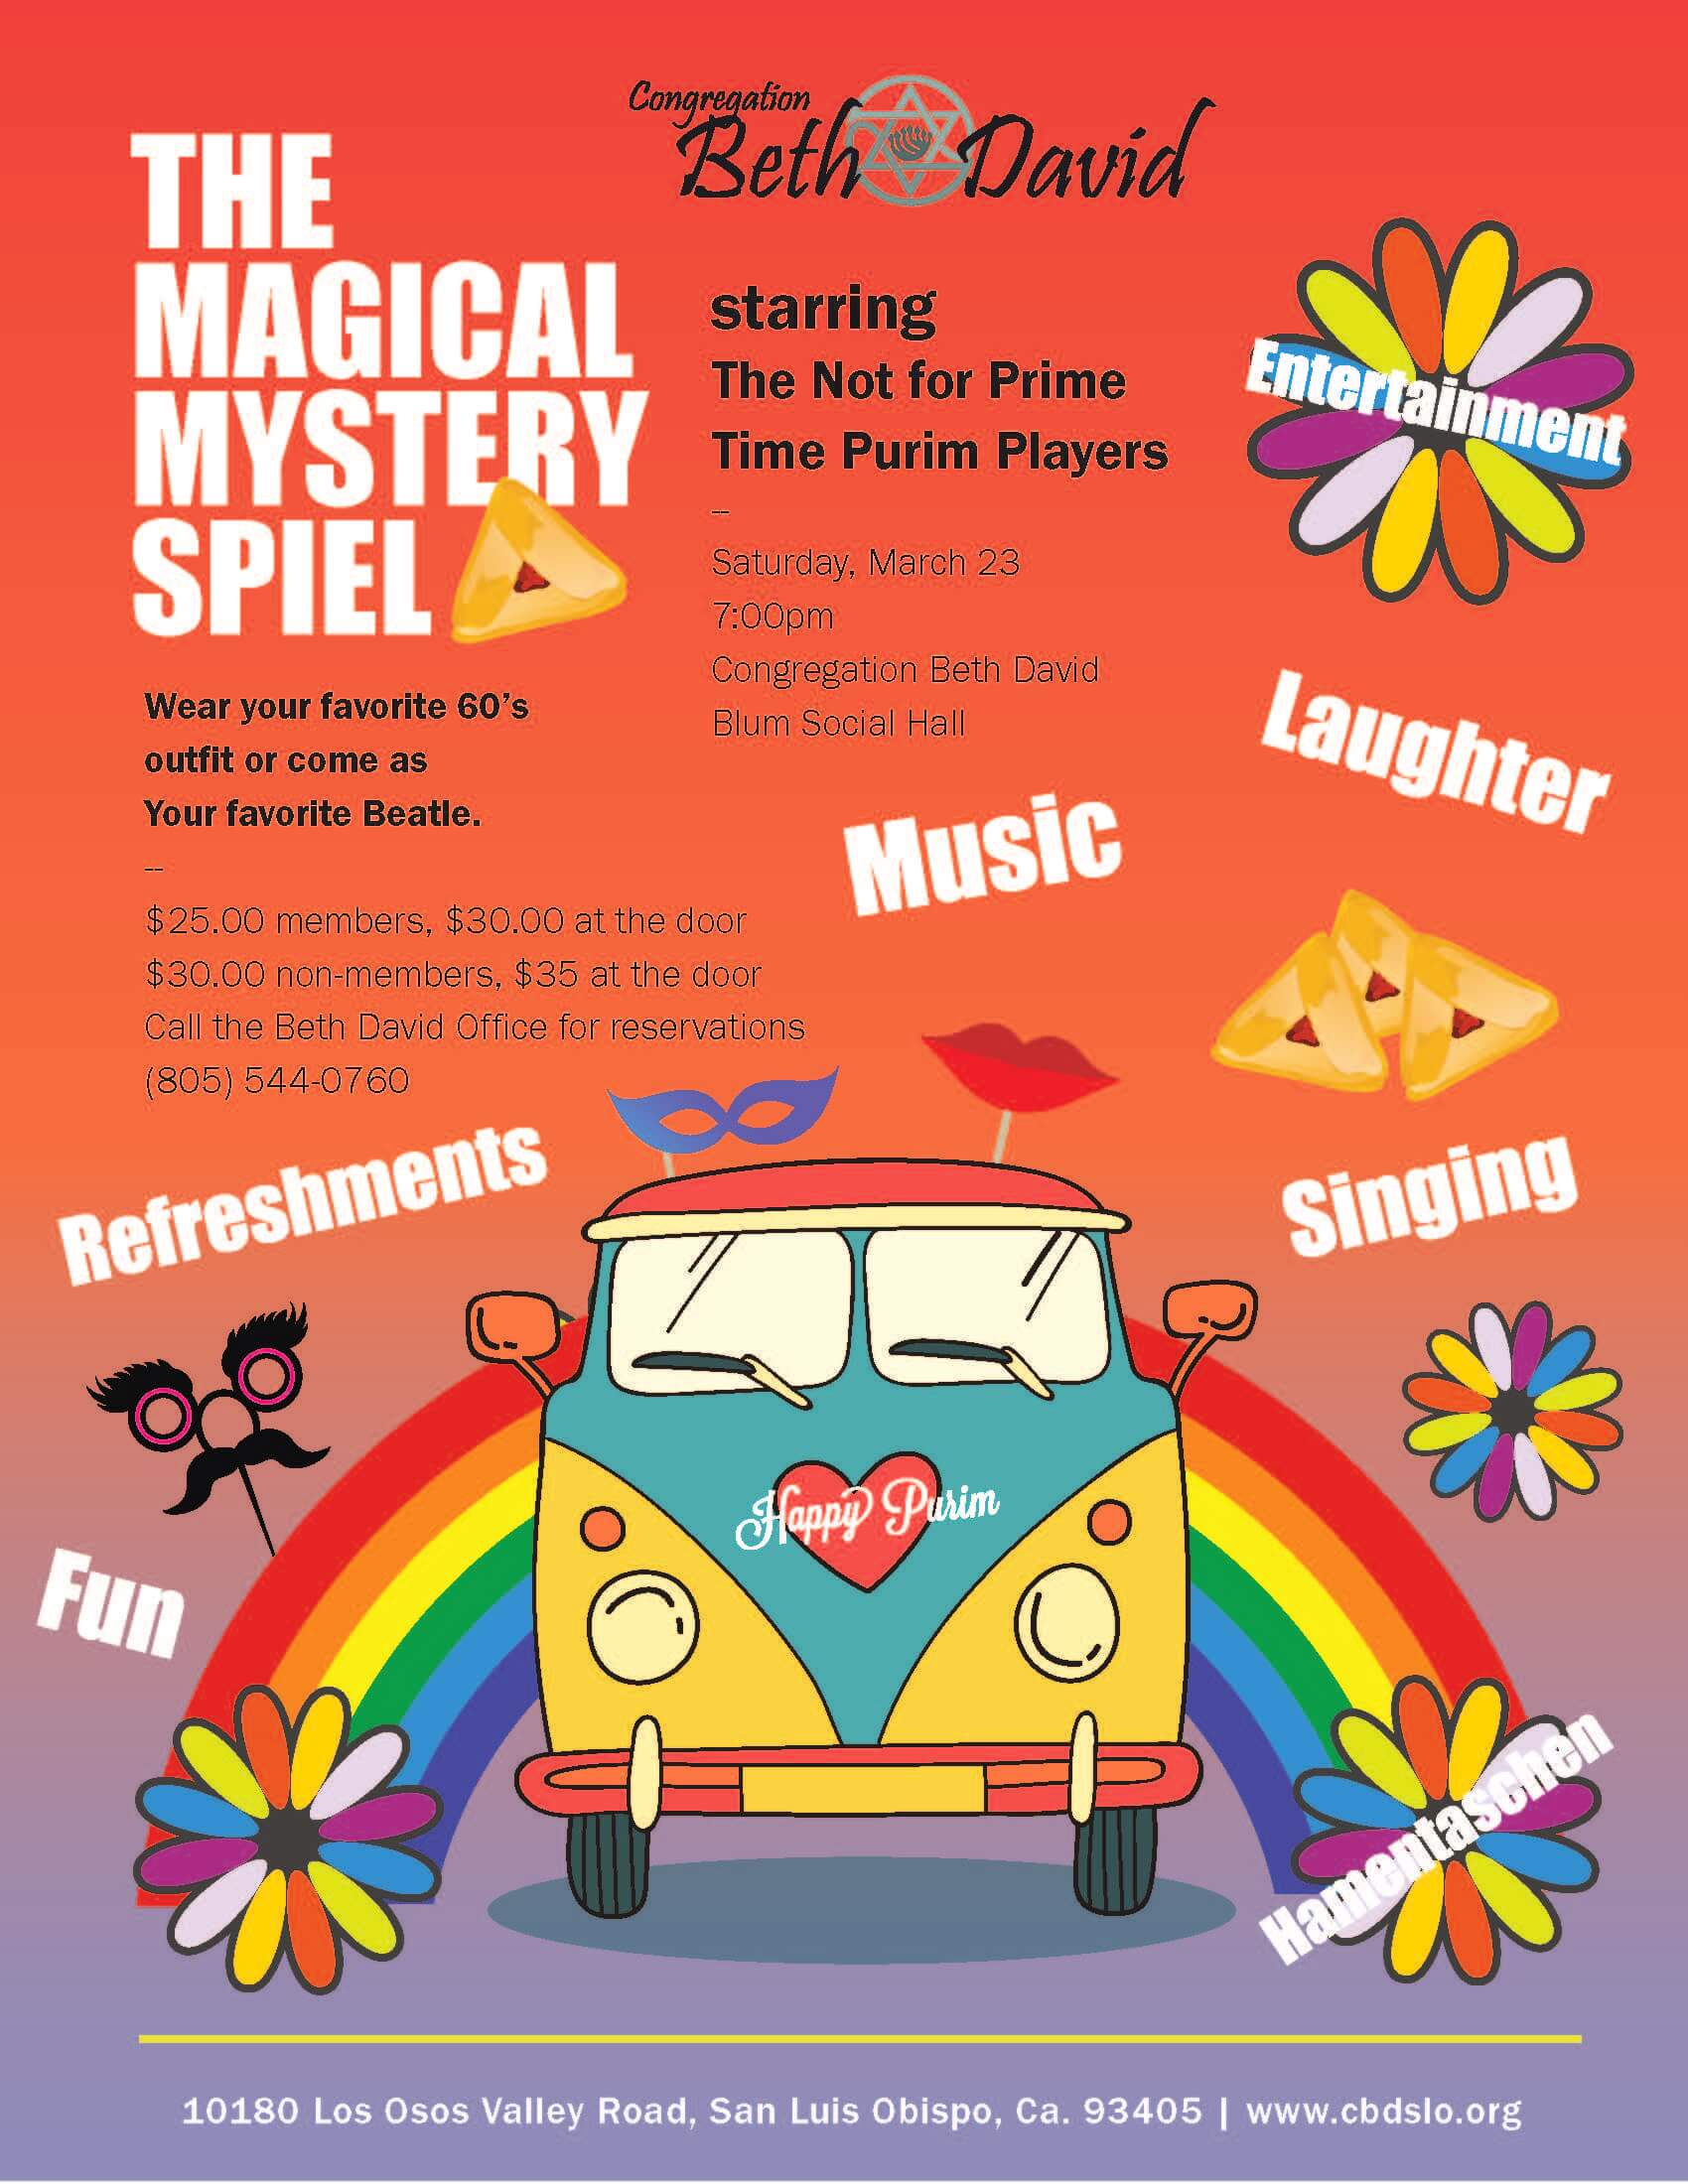 San Luis Obispo Event Flyer for The Magical Mystery Spiel